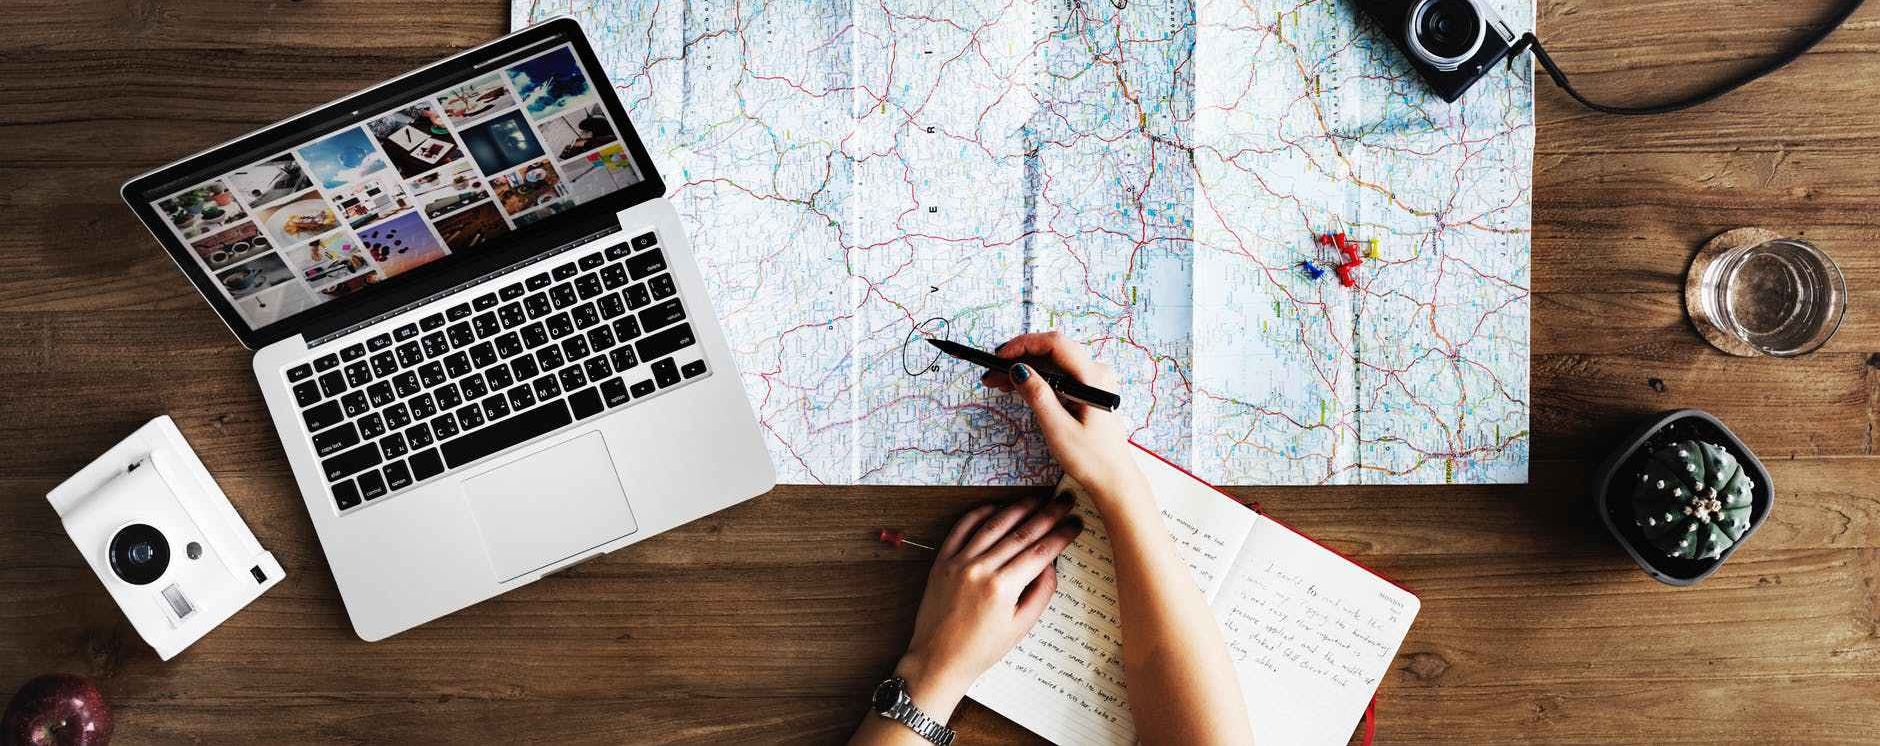 A laptop, a map, a notebook, and a pen held over a spot on the map.